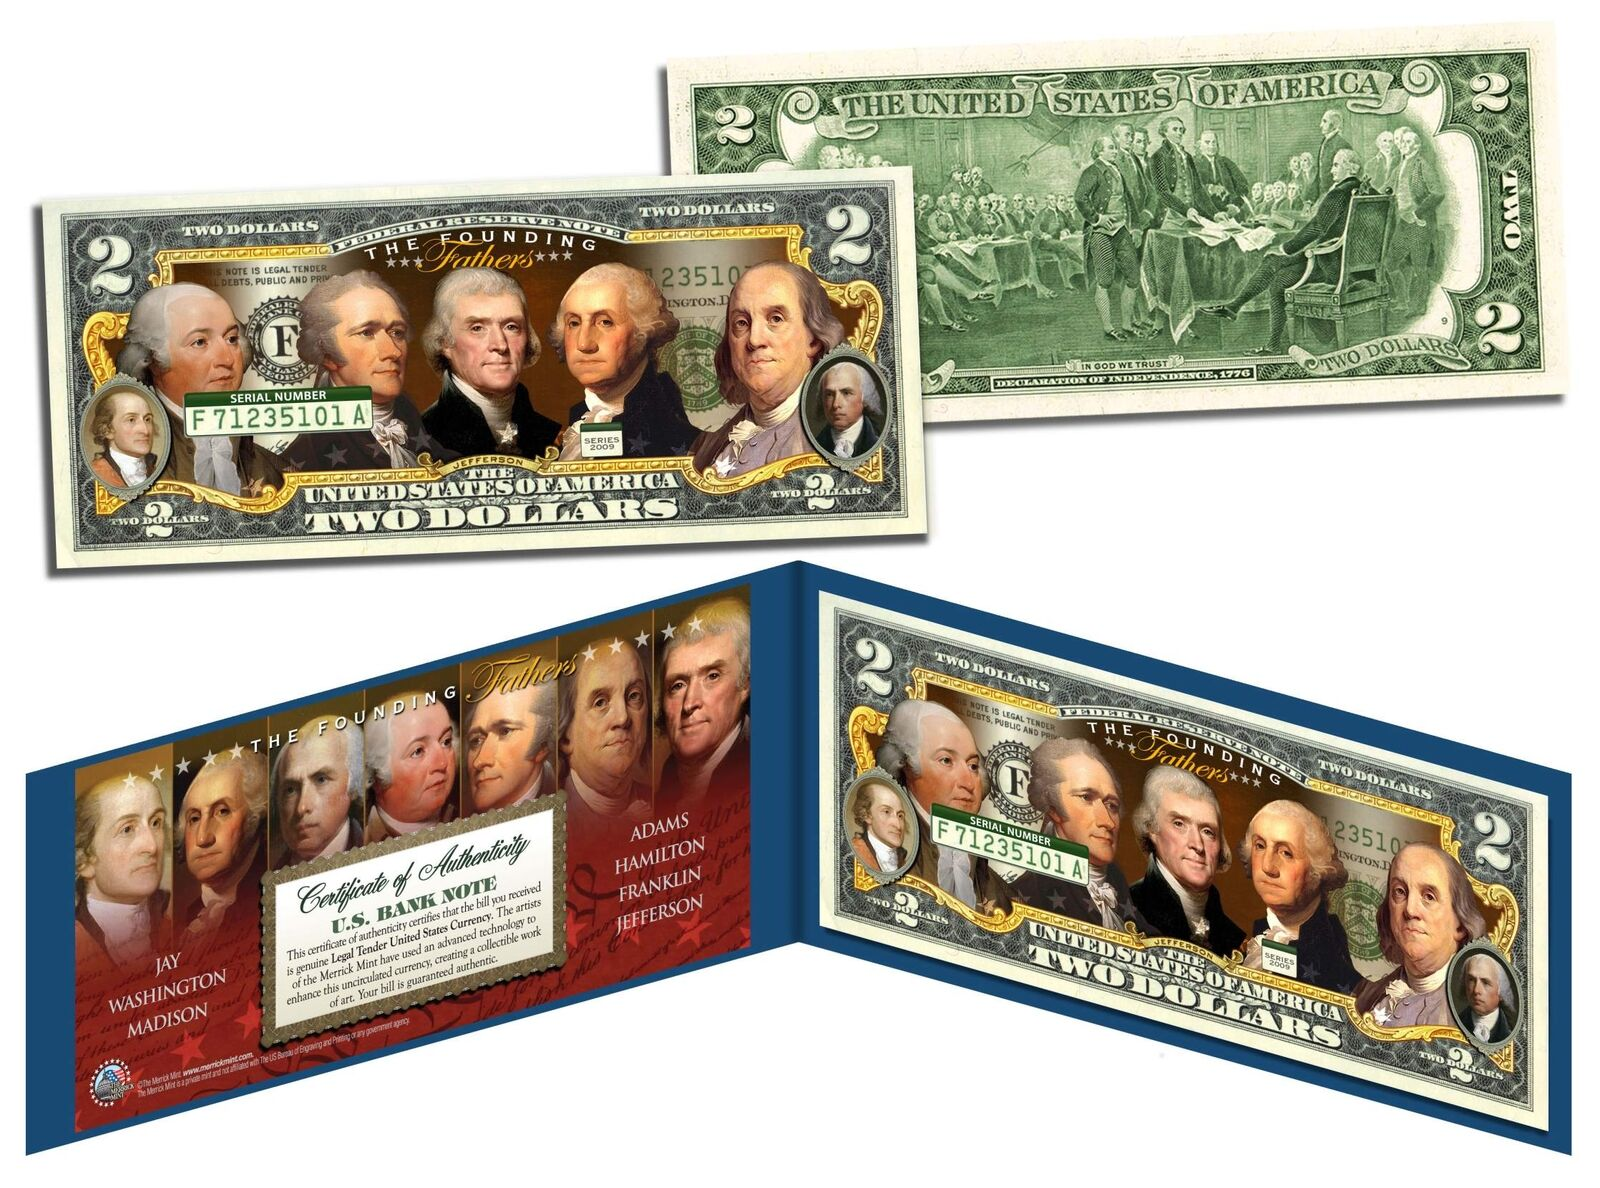 FOUNDING FATHERS OF THE UNITED STATES Colorized Obverse $2 Bill US Legal Tender 1